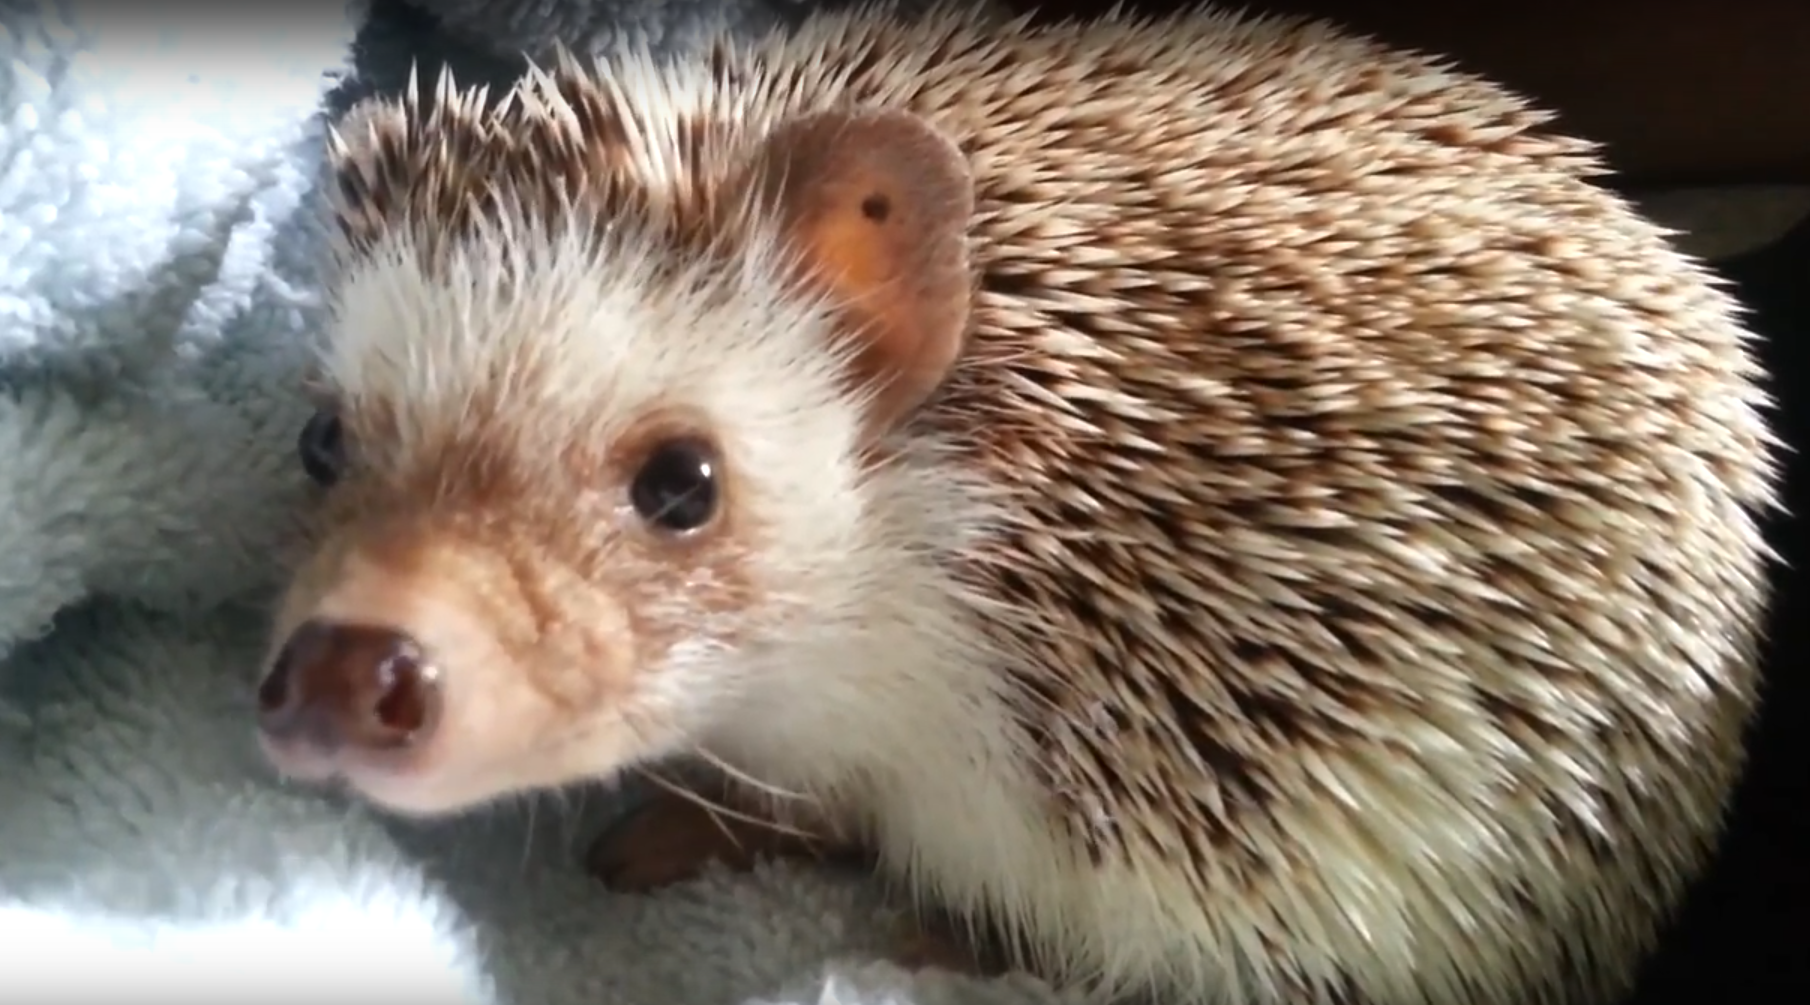 How to get rid of Hedgehog, control methods, catch and repel ...